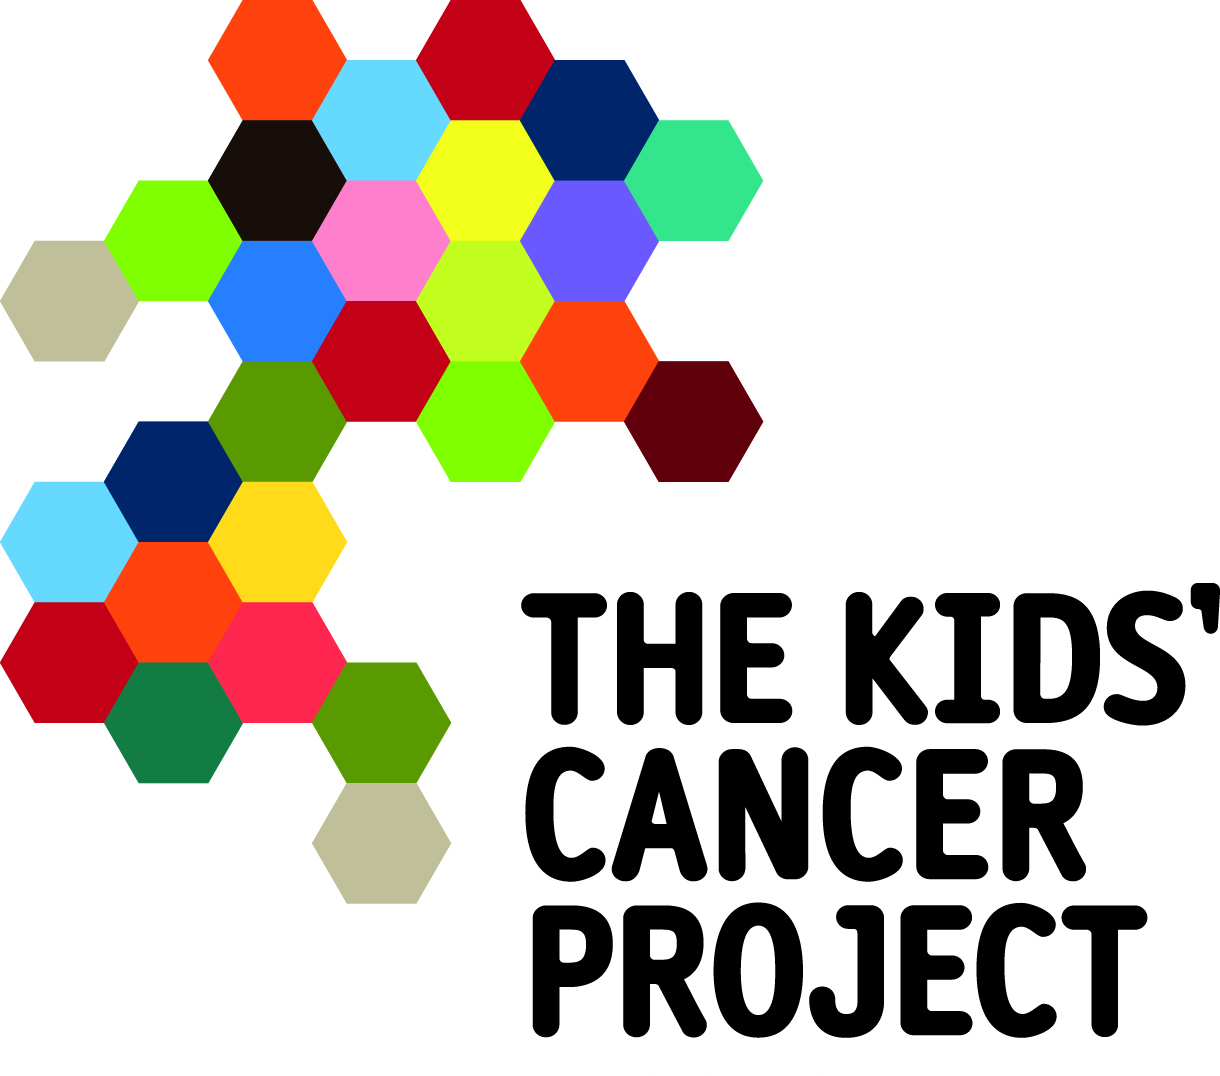 the-kids-cancer-project-logo